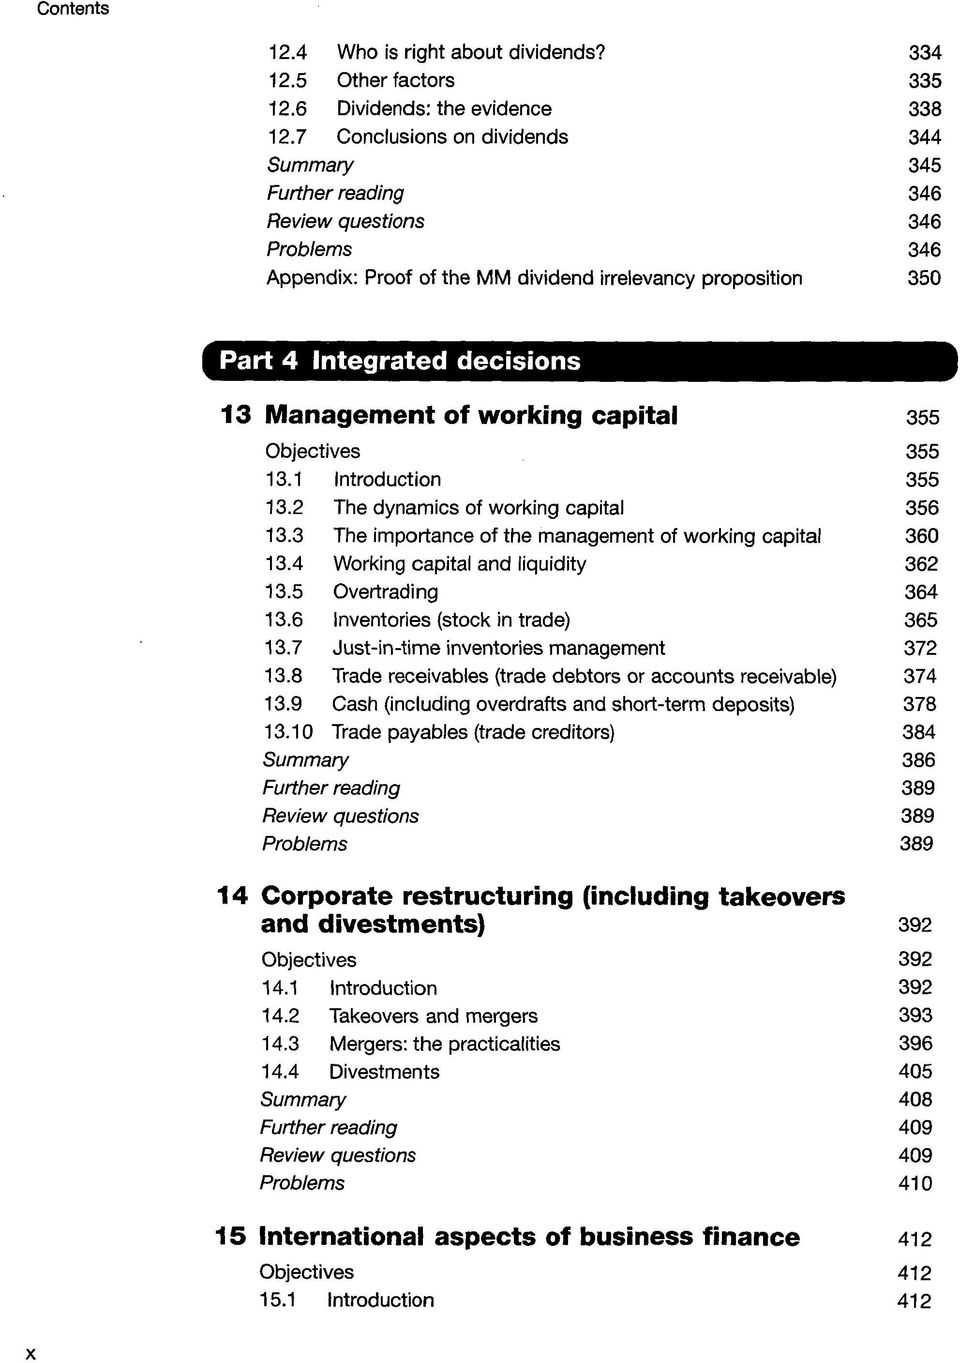 Objectives 355 13.1 Introduction 355 13.2 The dynamics of working capital 356 13.3 The importance of the management of working capital 360 13.4 Working capital and liquidity 362 13.